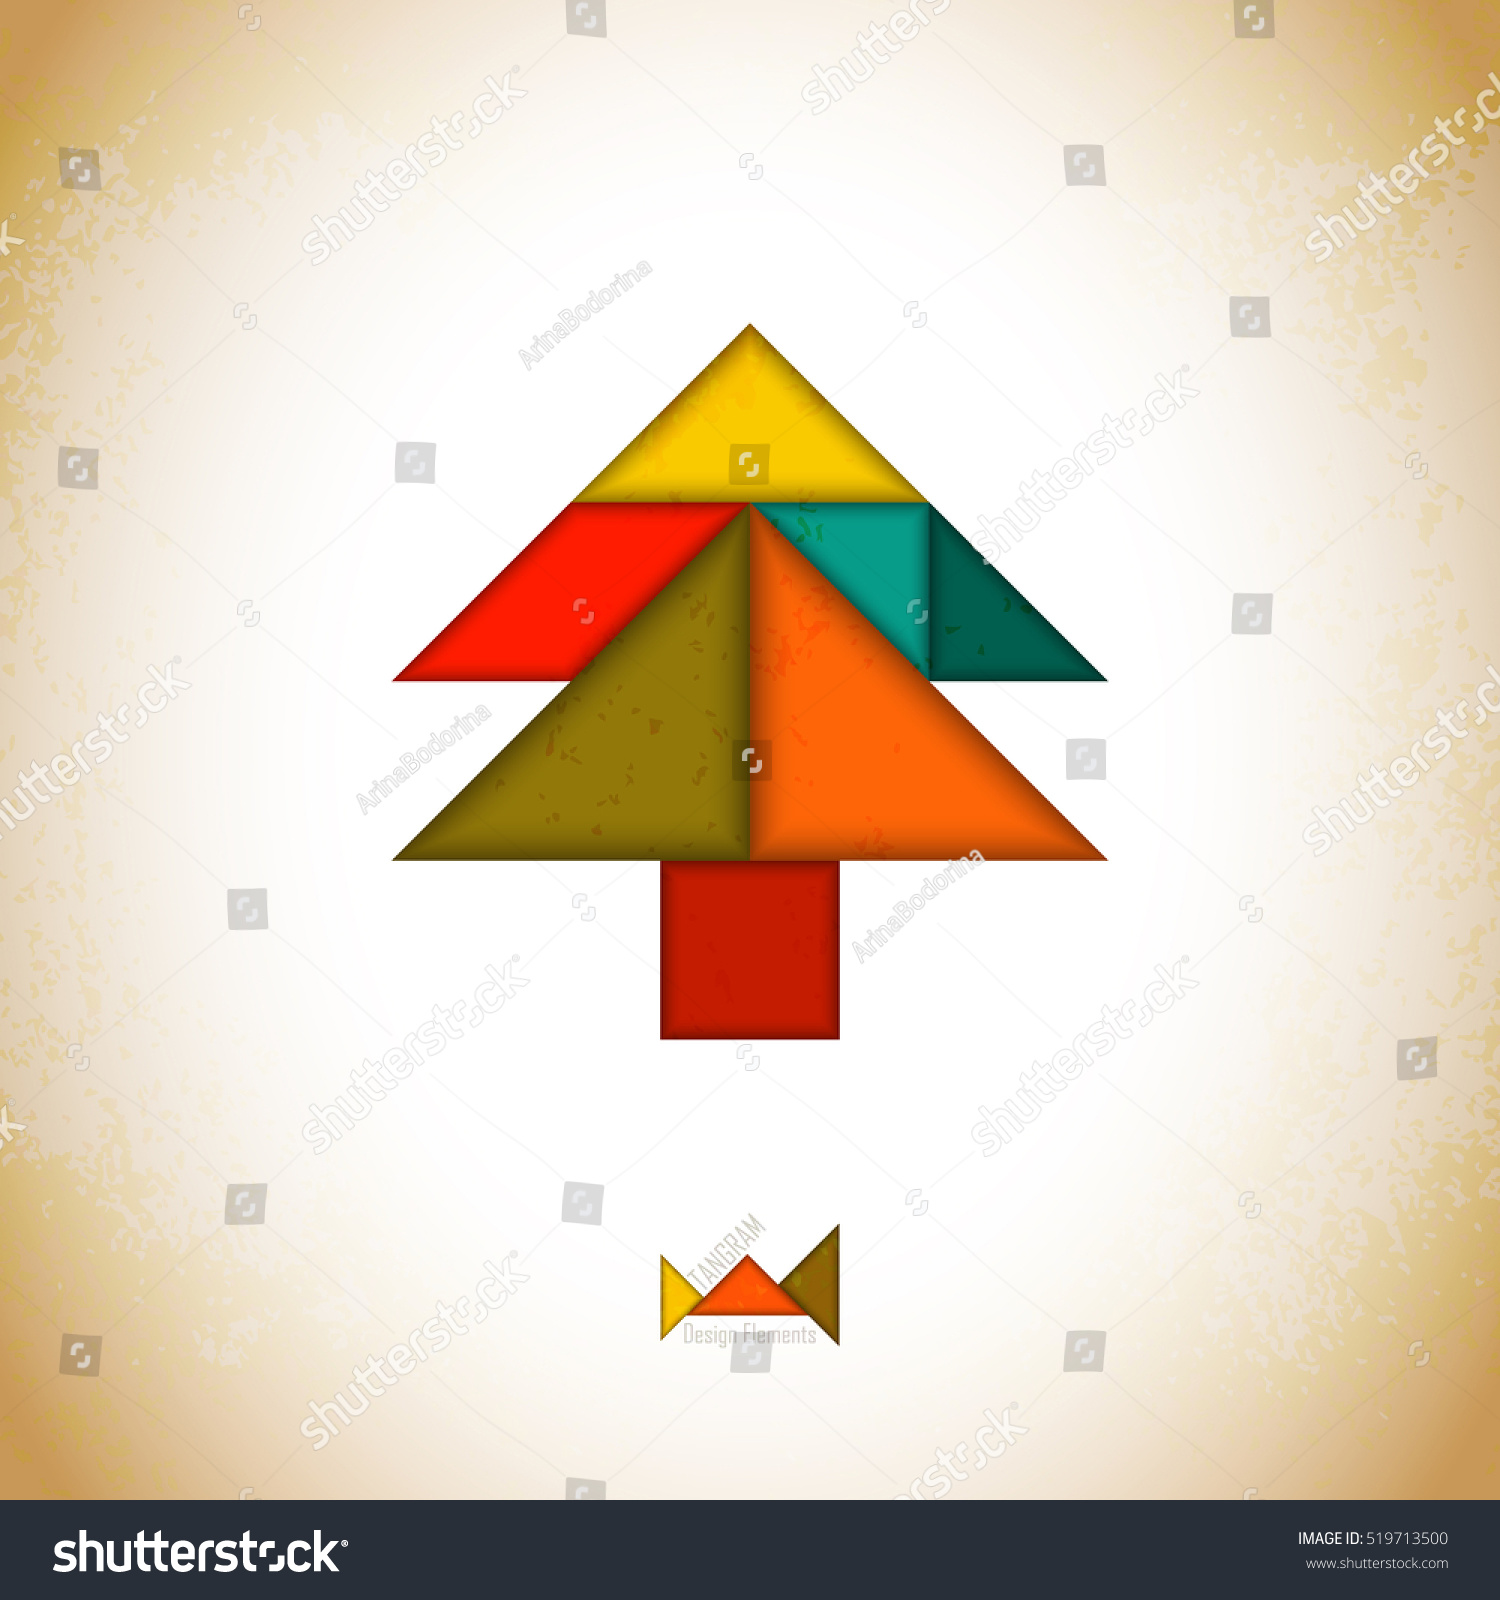 abstract picture of a christmas tree christmas card with tree created from tangram pieces